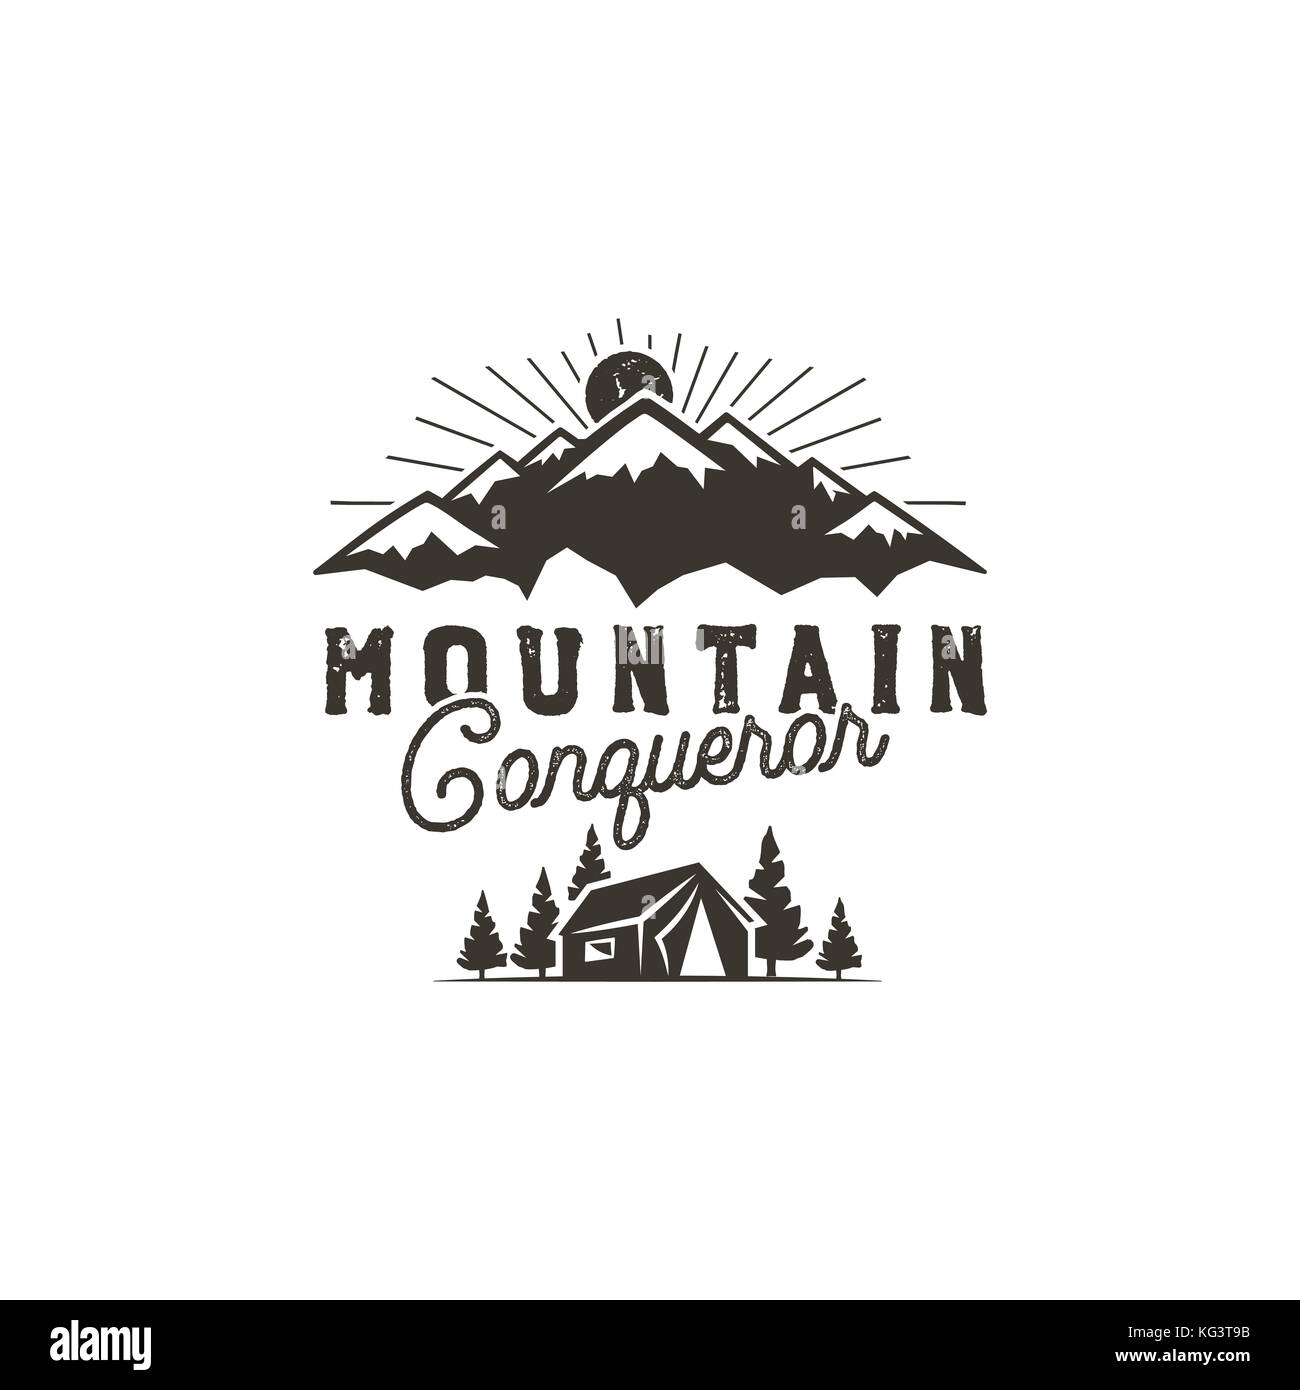 Traveling, outdoor badge. Scout camp emblem. Vintage hand drawn monochrome design. Mountain conqueror quote. Stock - Stock Image